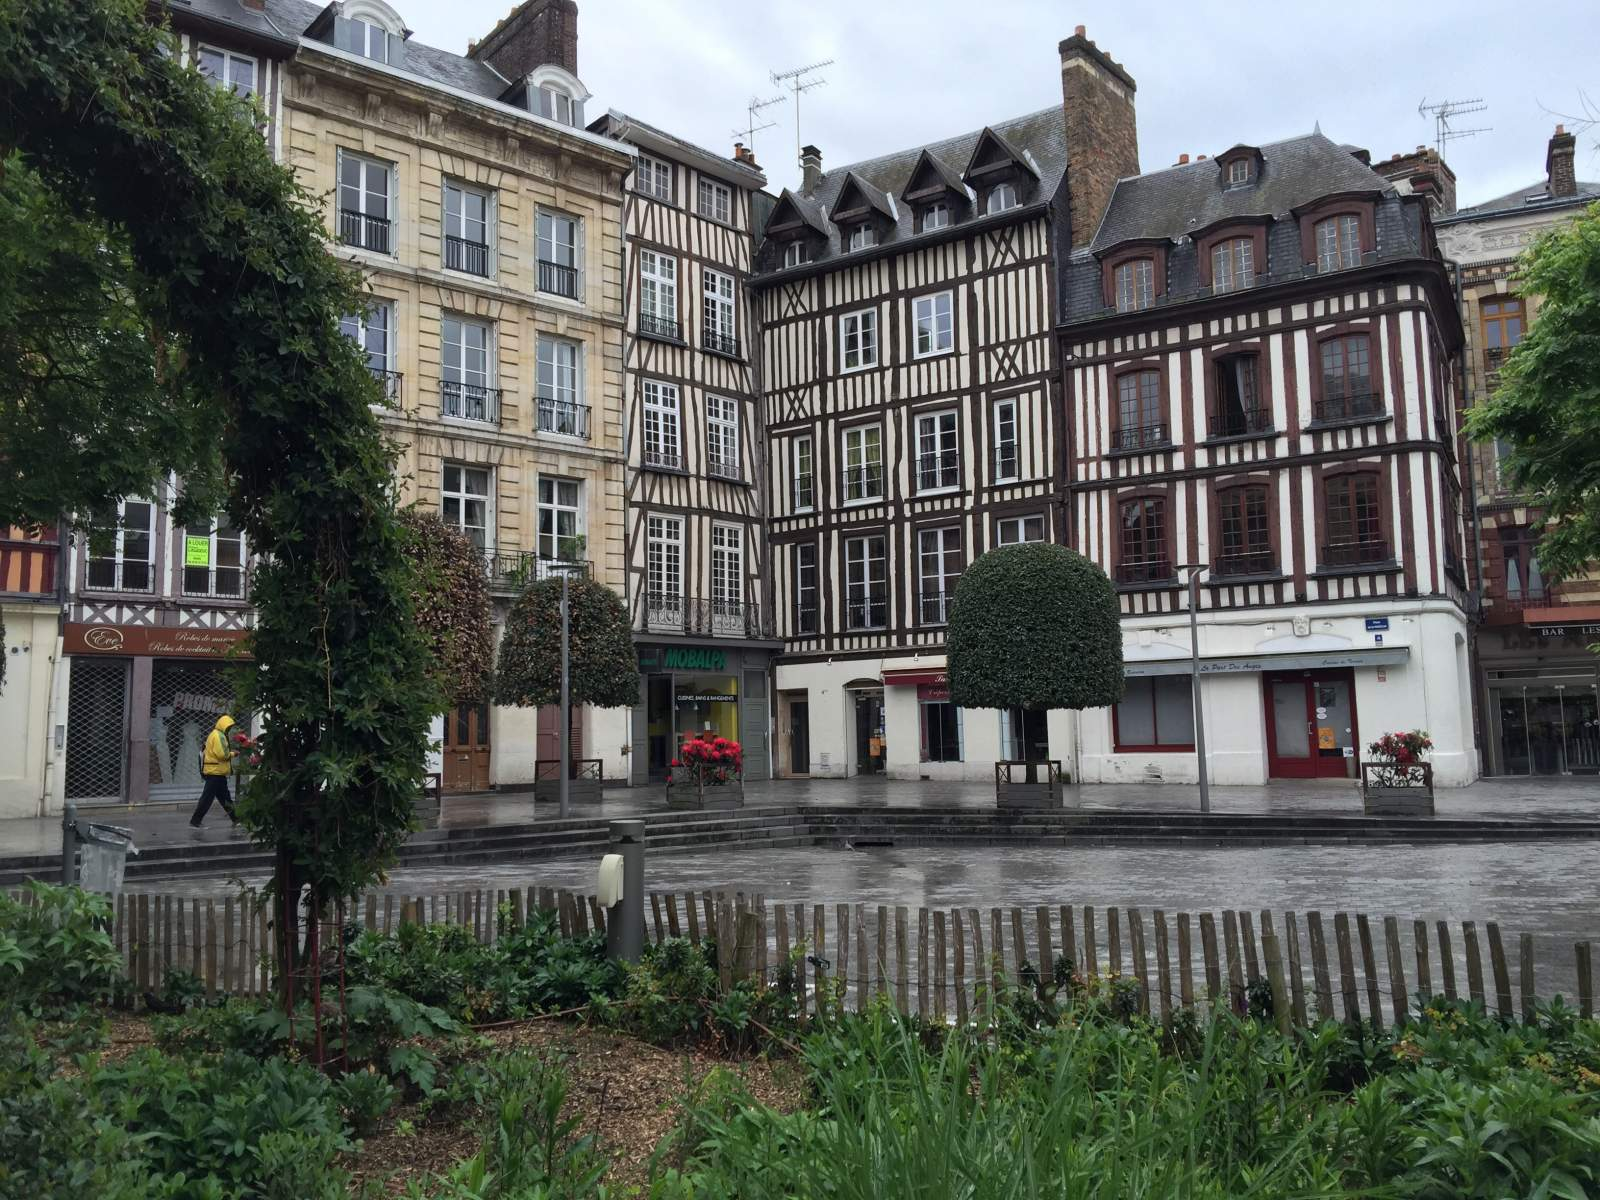 square of buildings wattle and daub rouen normandy france